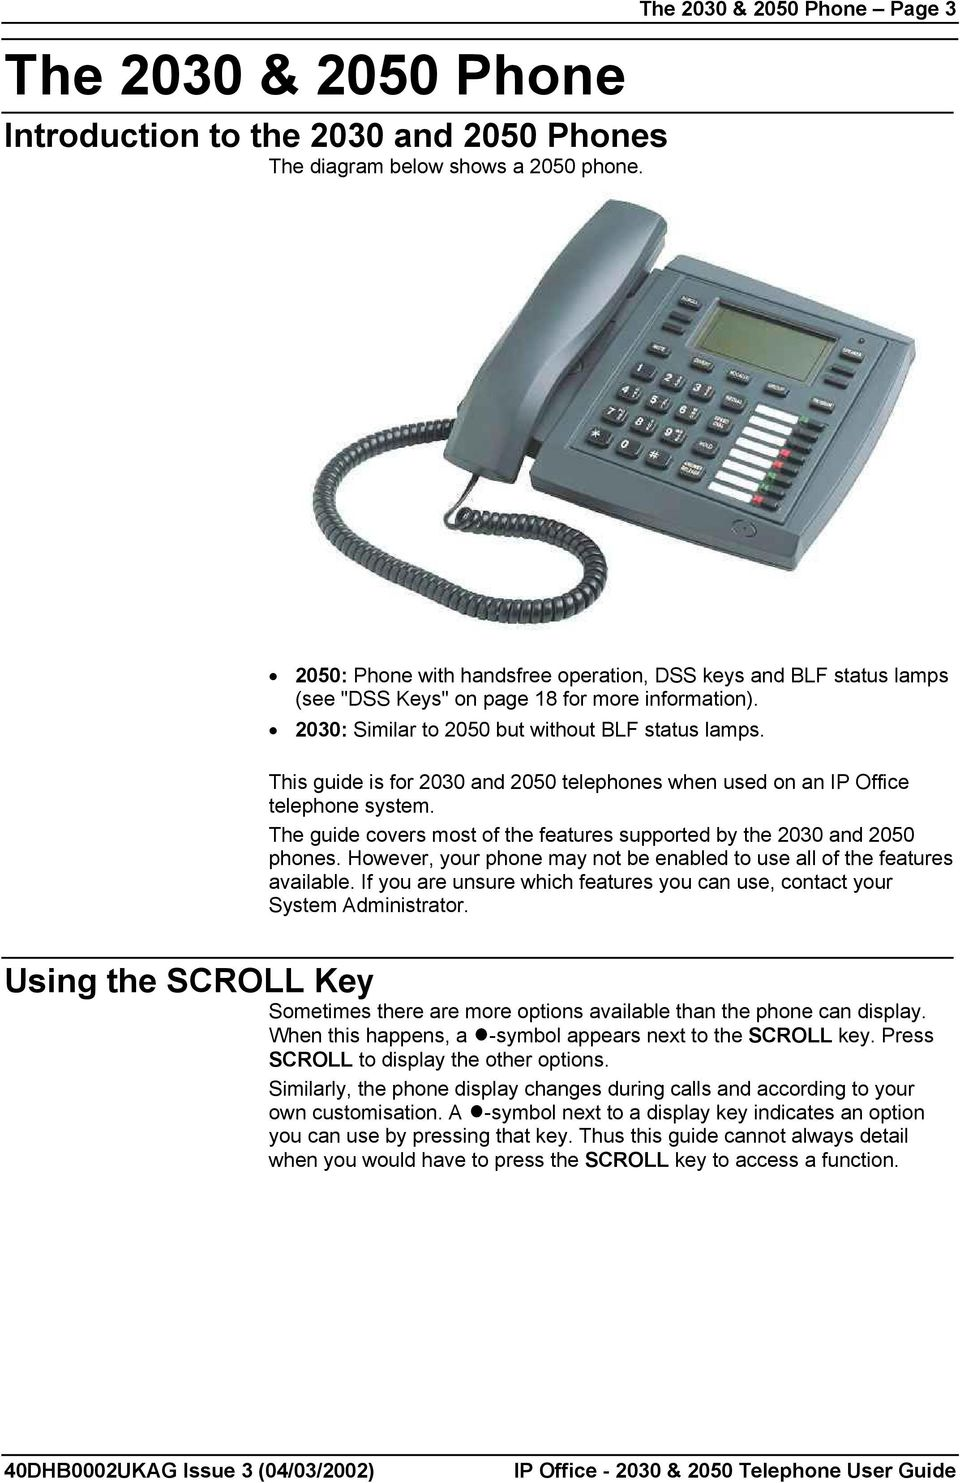 This guide is for 2030 and 2050 telephones when used on an IP Office telephone system. The guide covers most of the features supported by the 2030 and 2050 phones.